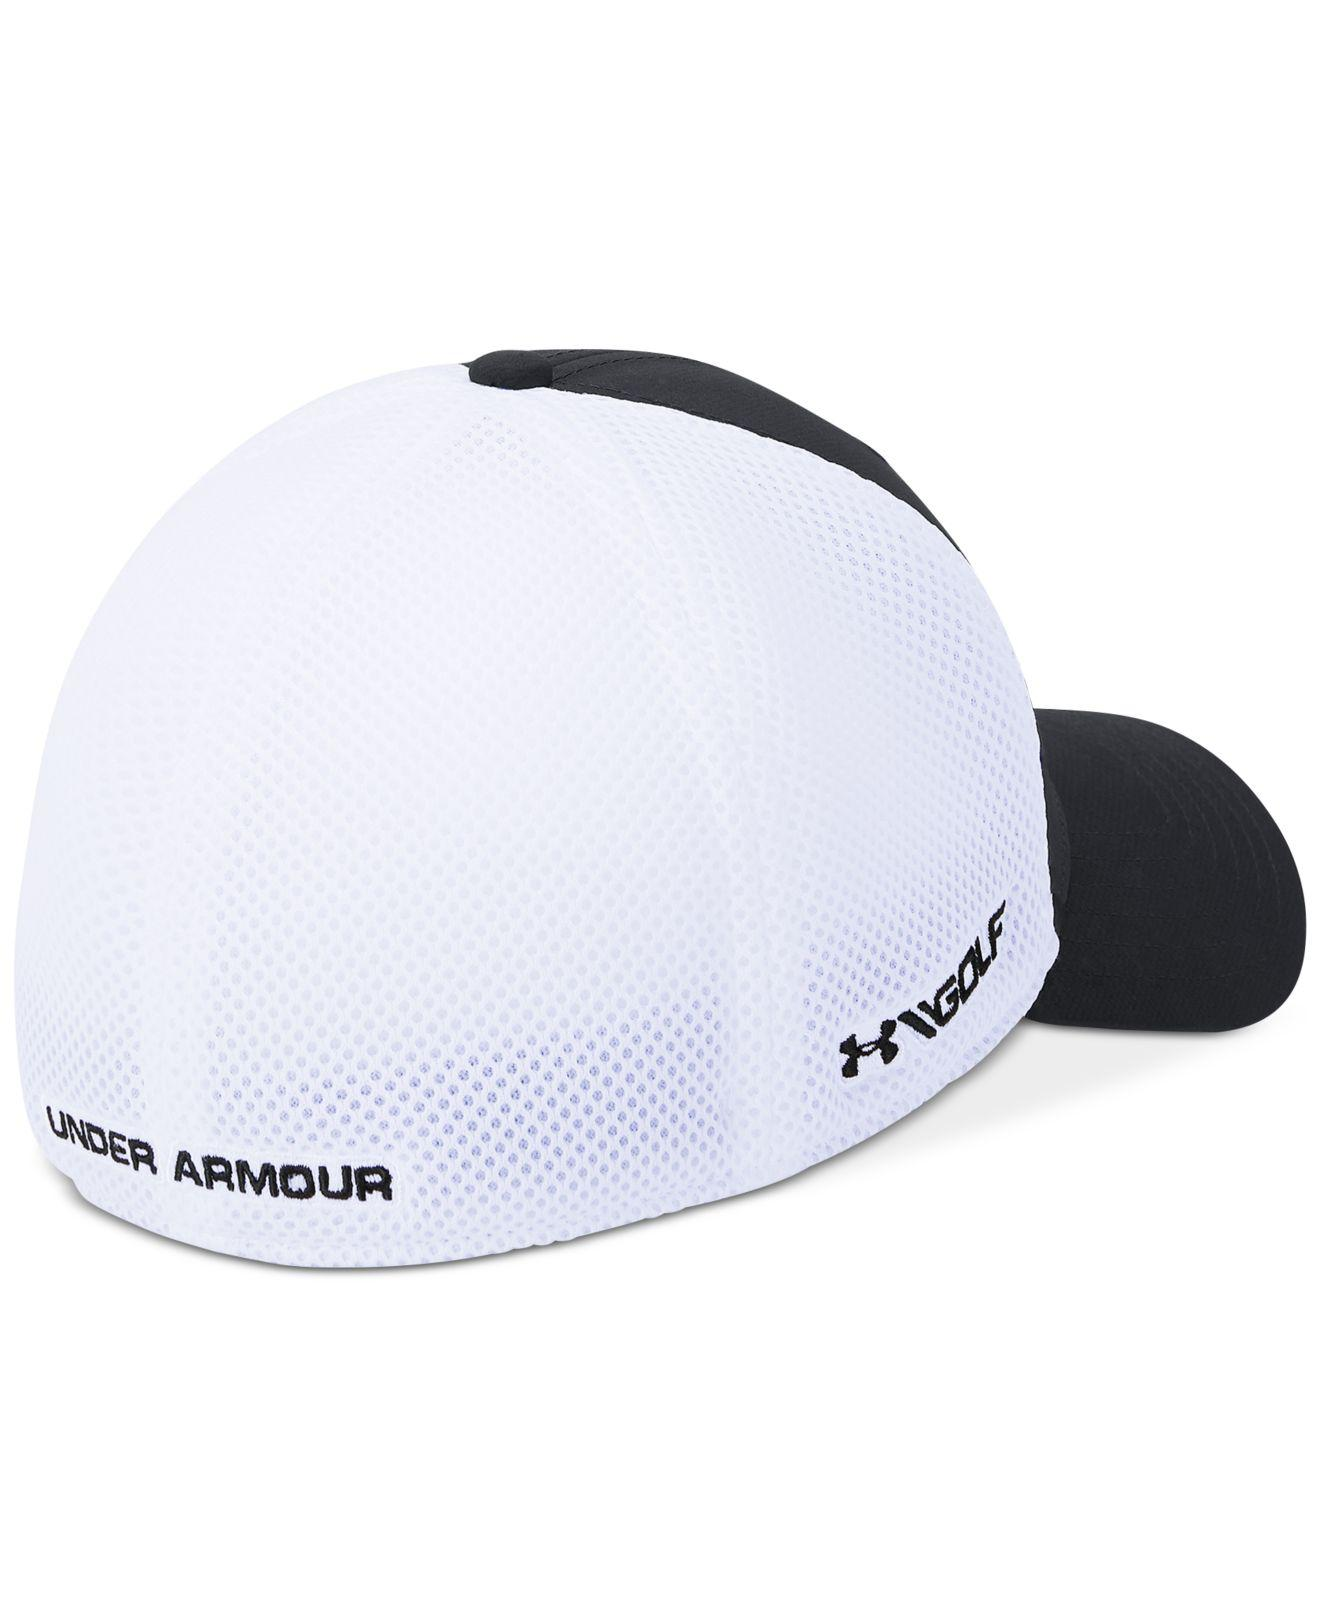 284326a4e23 Lyst - Under Armour Classic Colorblocked Mesh Fitted Hat for Men